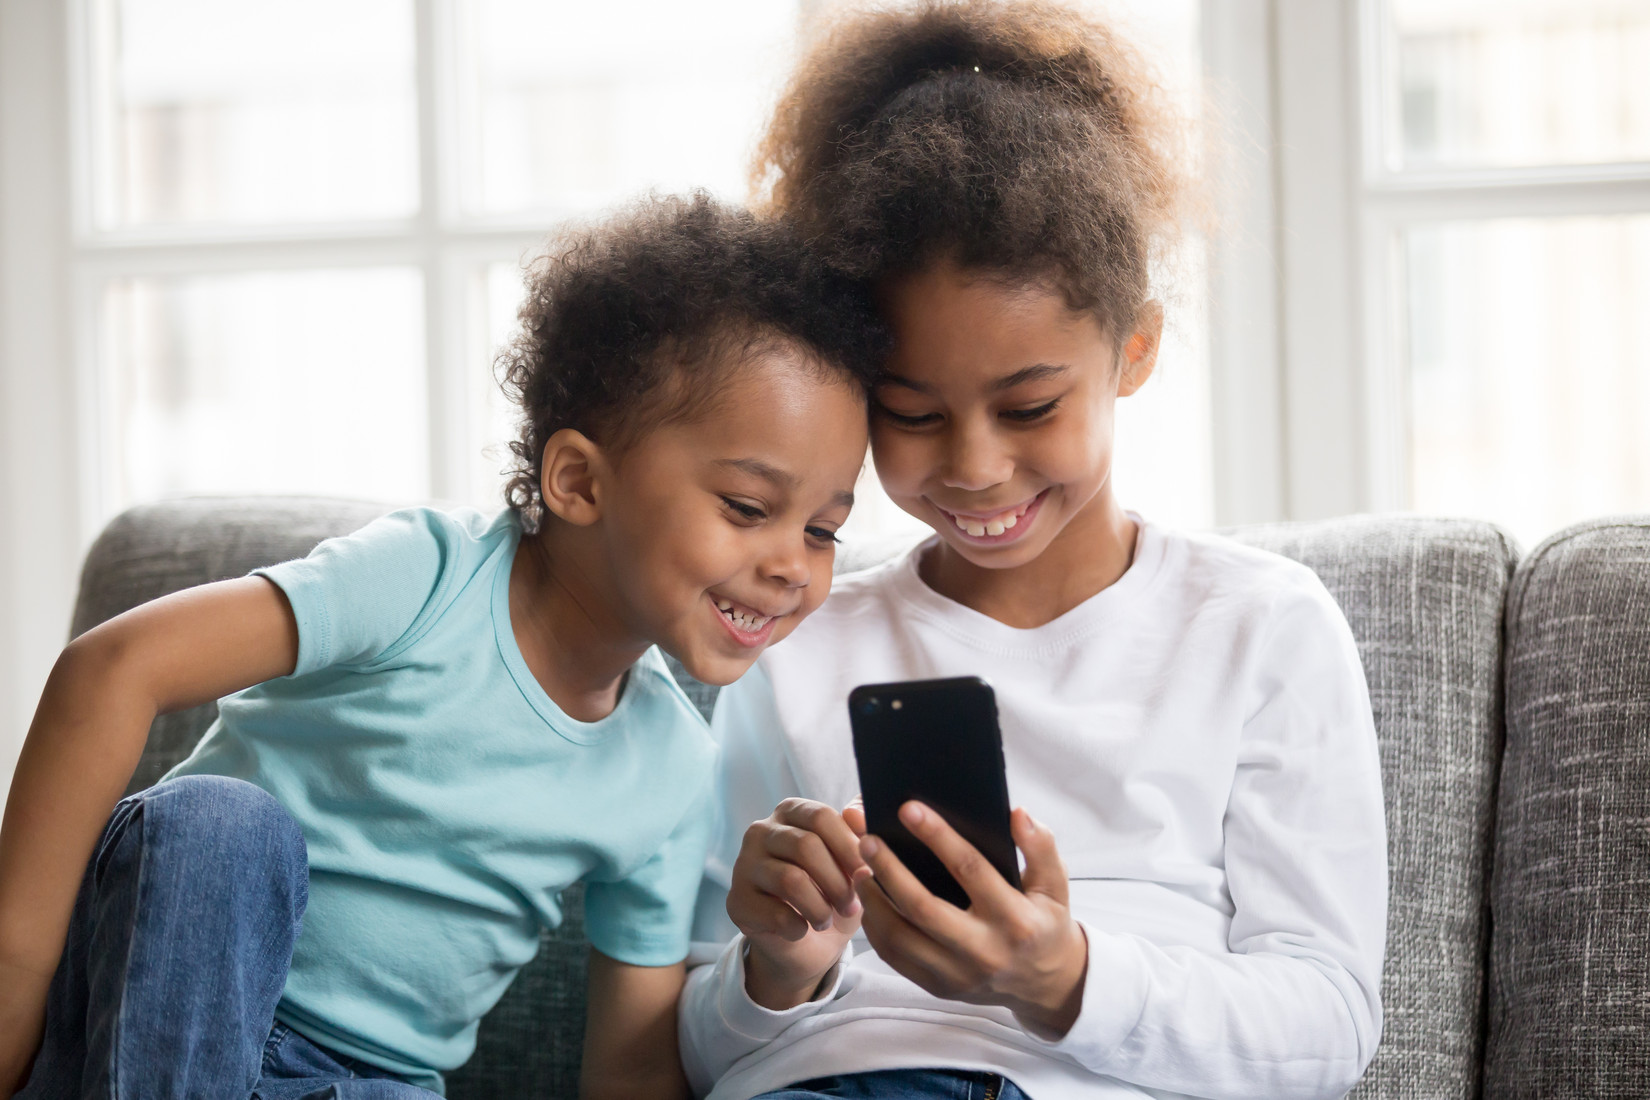 10 Fun and Educational Apps to Keep Kids Learning at Home